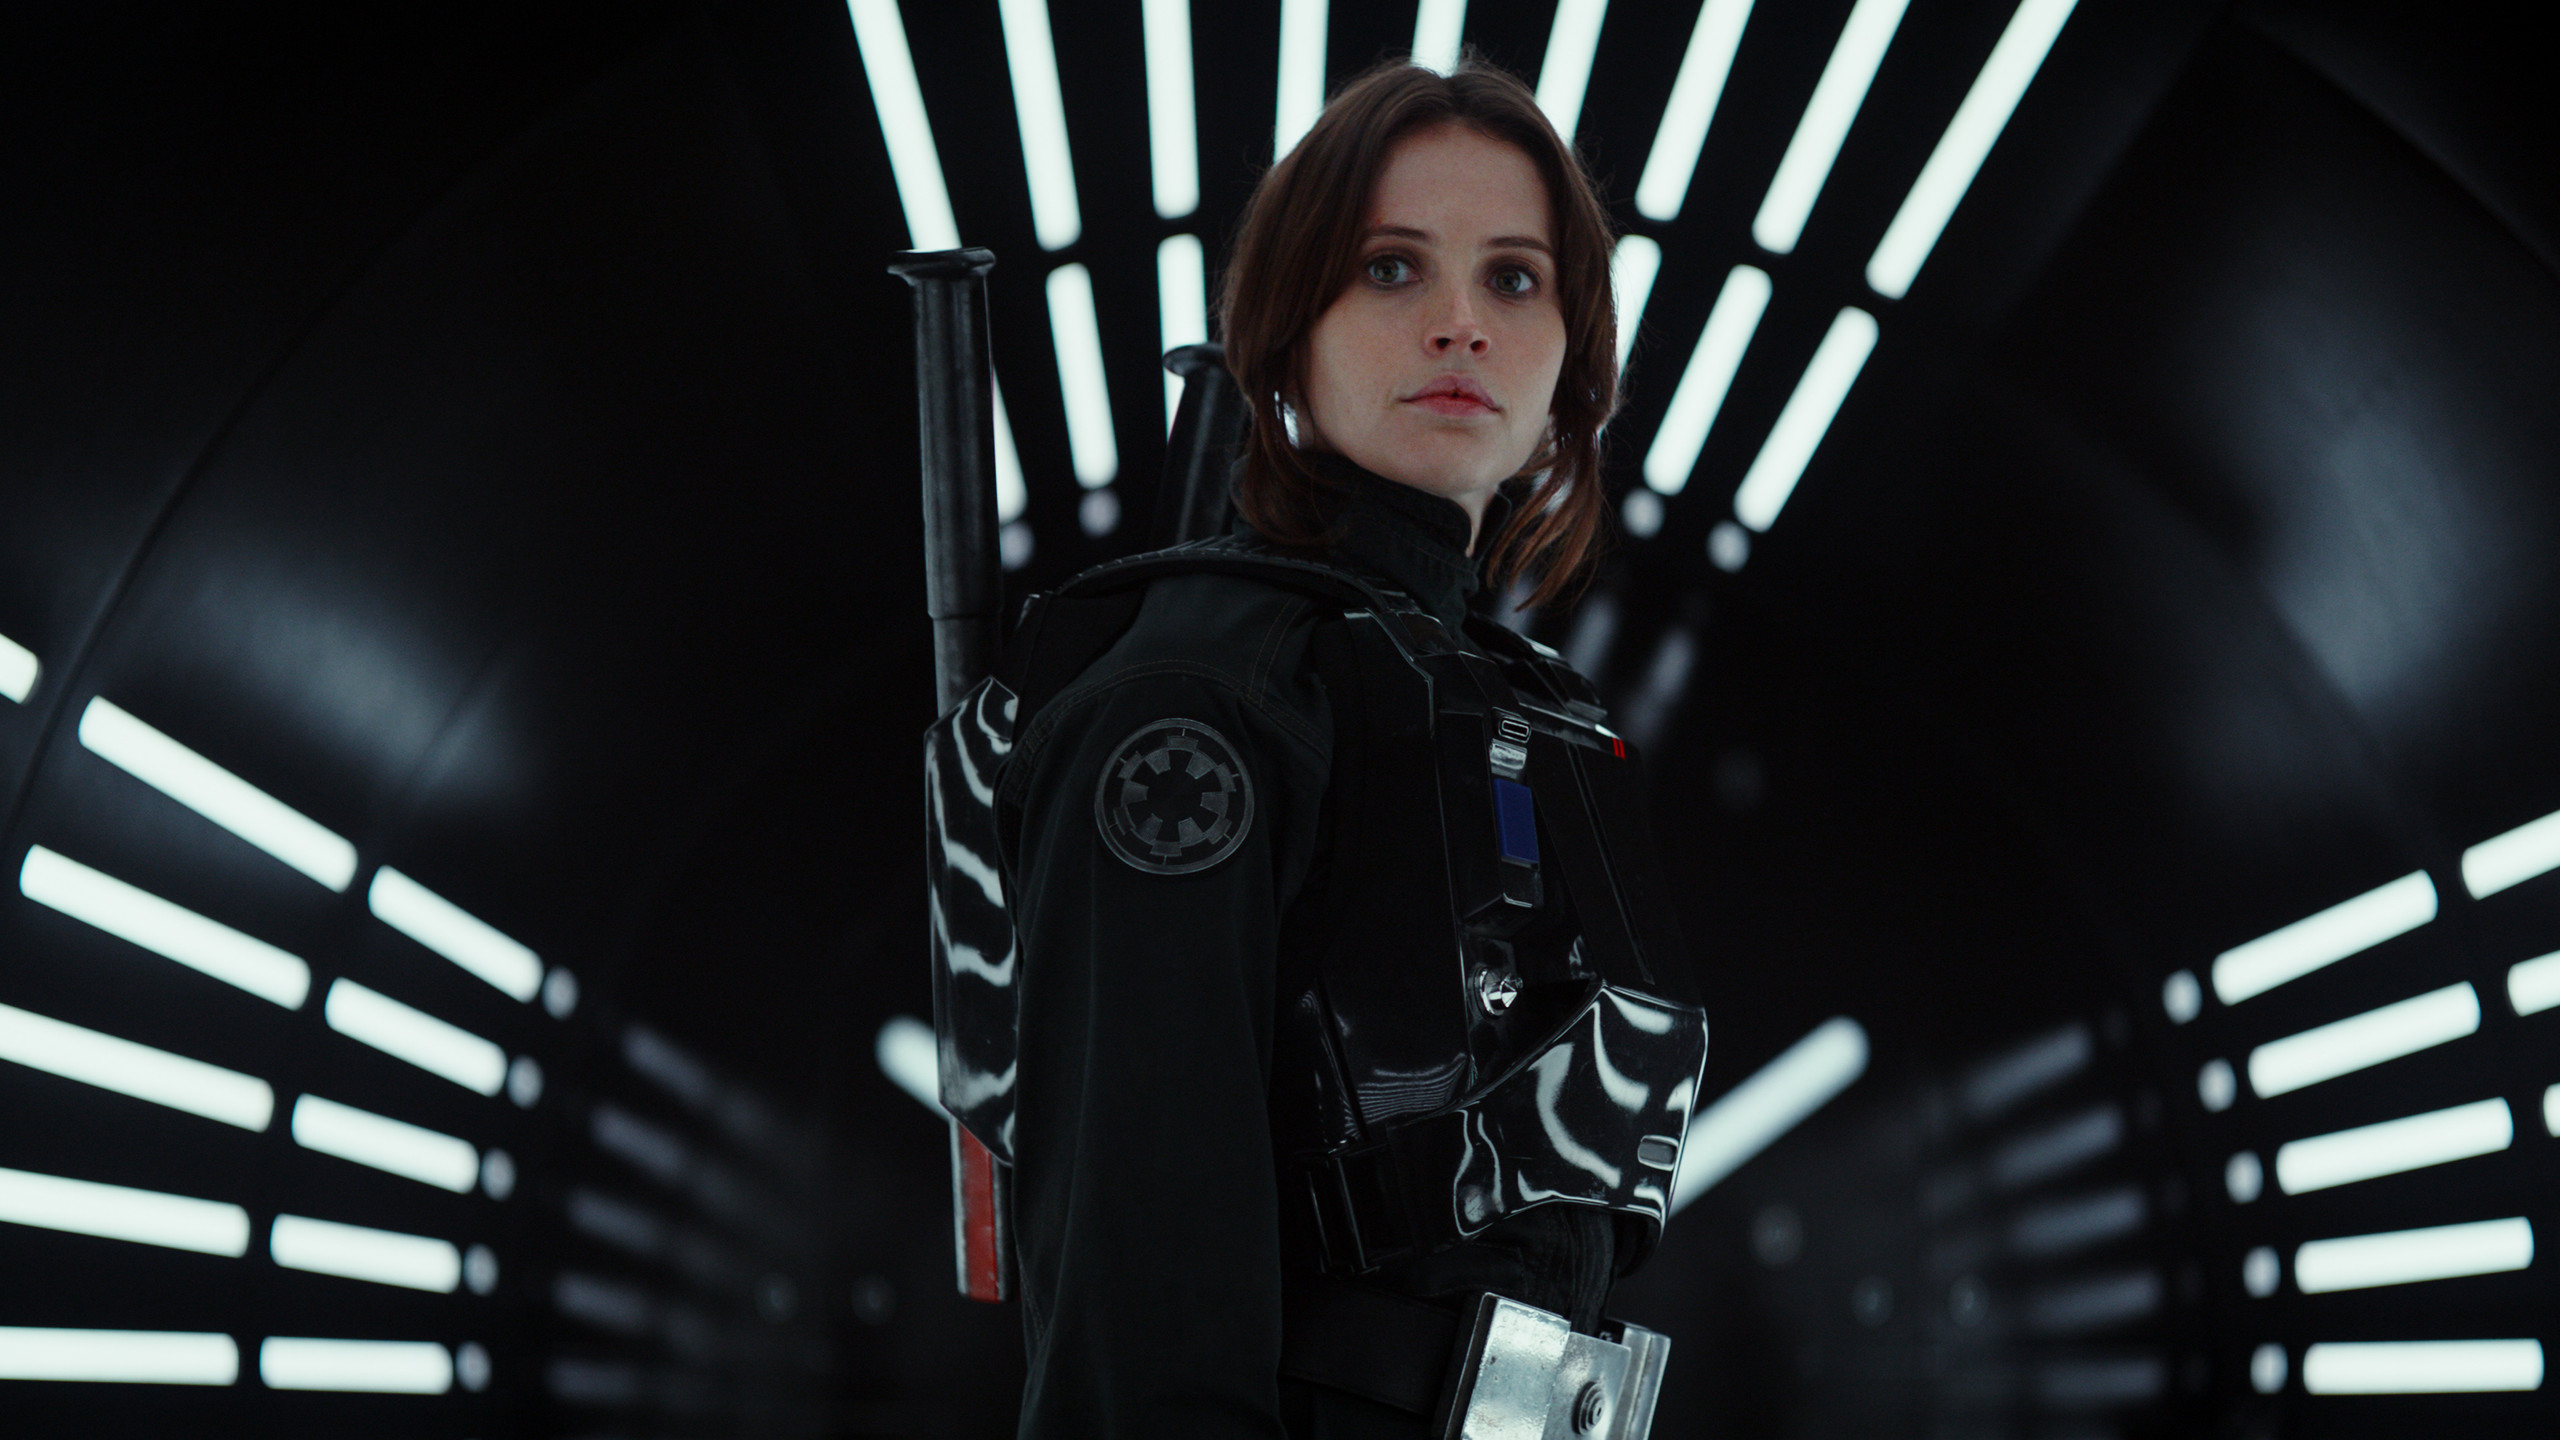 Jyn Erso in disguise.